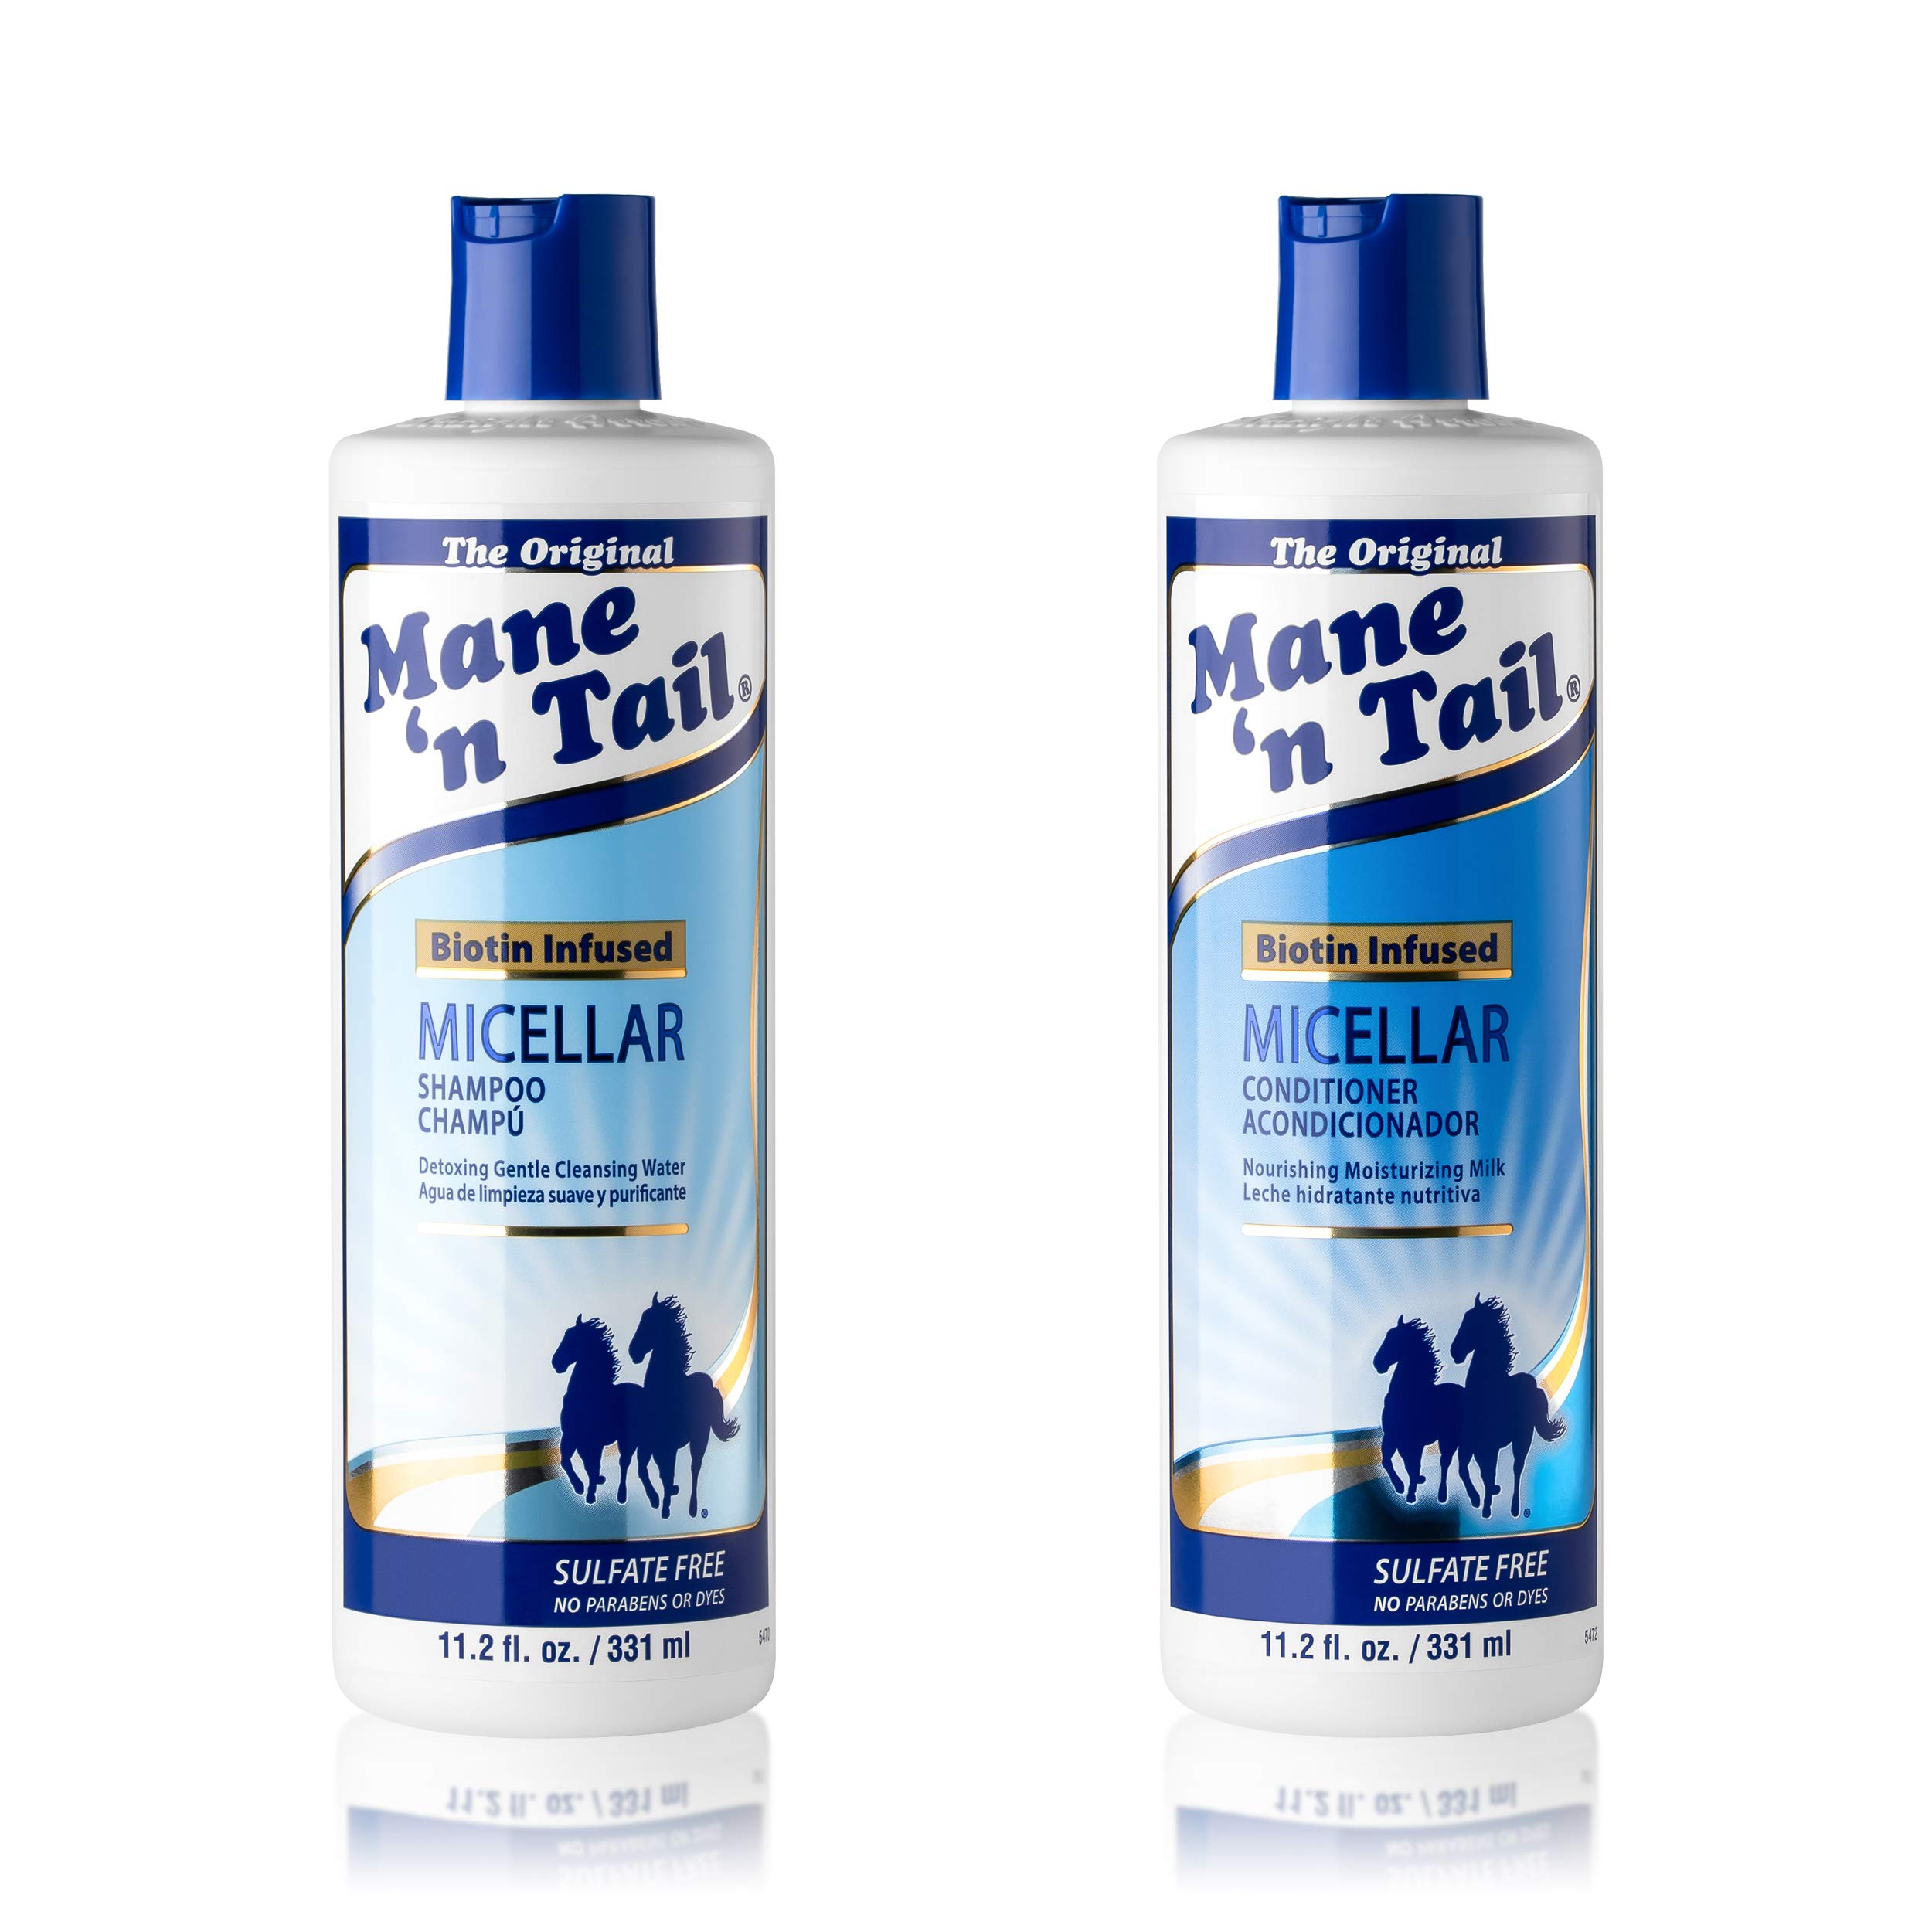 Mane 'n Tail Micellar Sulfate Free Shampoo and Conditioner Biotin Infused 11.2 Ounce Each